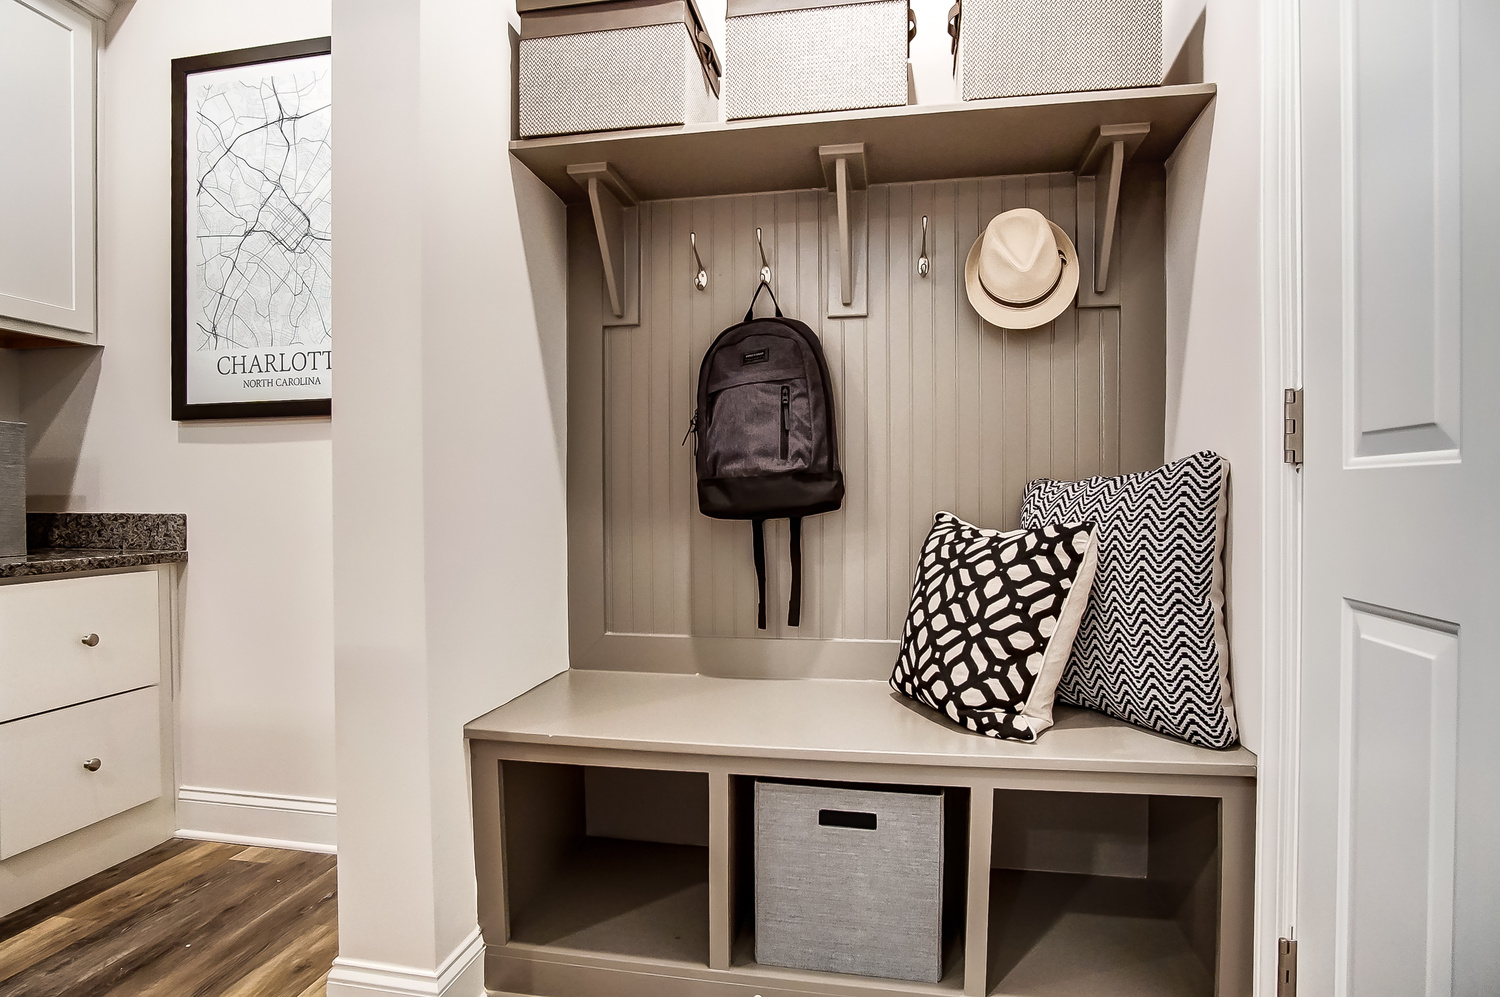 Bluffton Townhome Drop Zone Built-ins